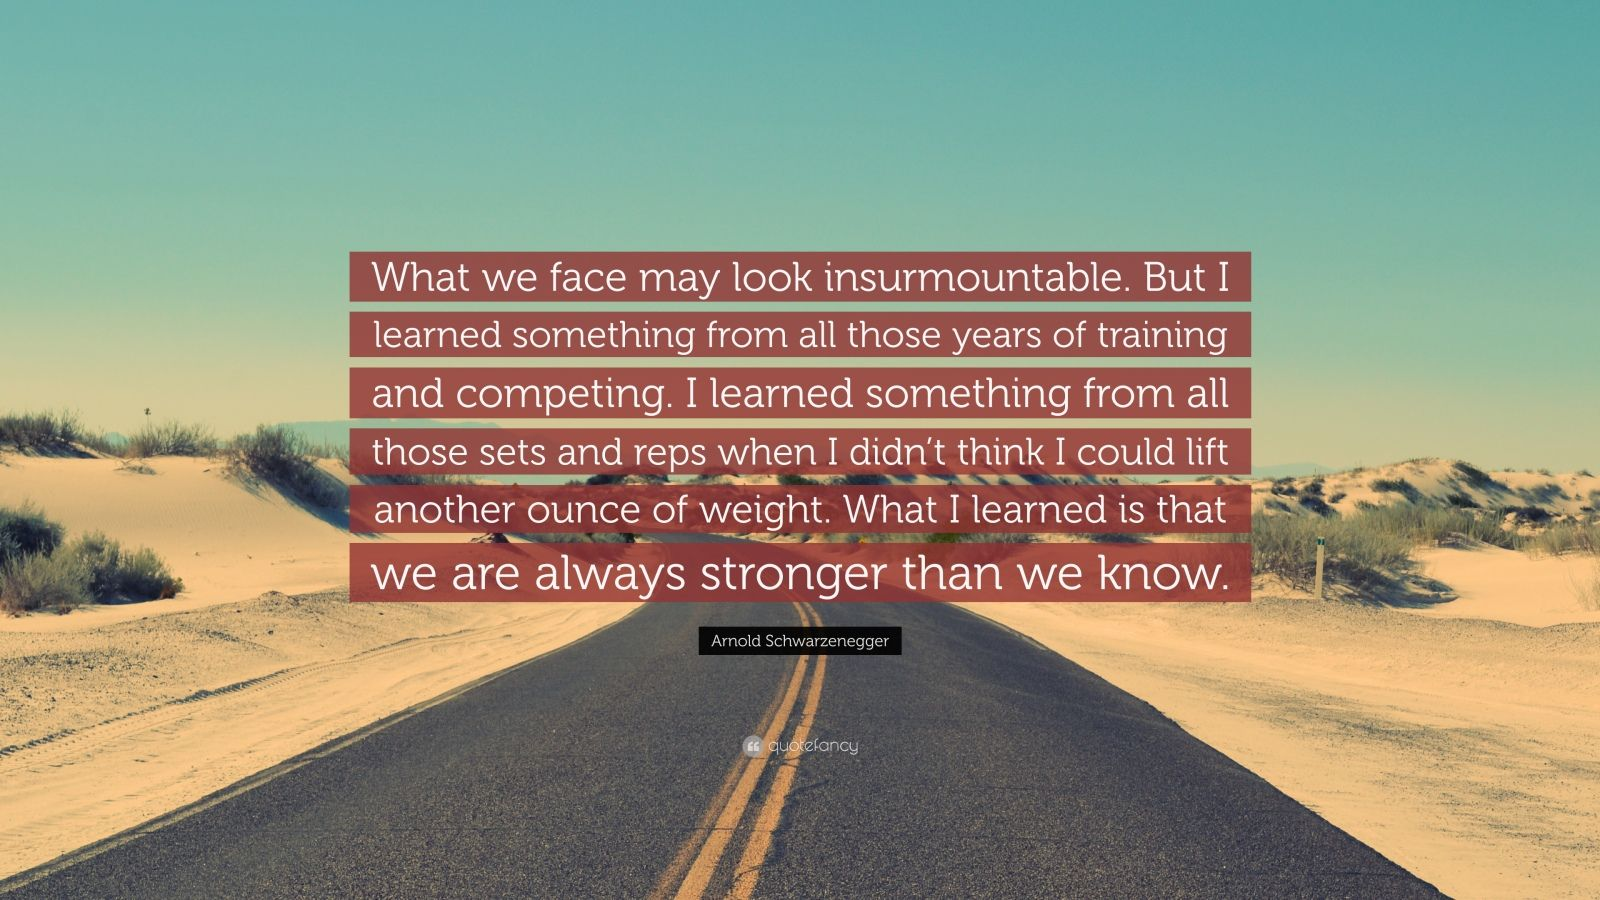 """Arnold Schwarzenegger Quote: """"What we face may look insurmountable. But I learned something from all those years of training and competing. I learned something from all those sets and reps when I didn't think I could lift another ounce of weight. What I learned is that we are always stronger than we know."""""""